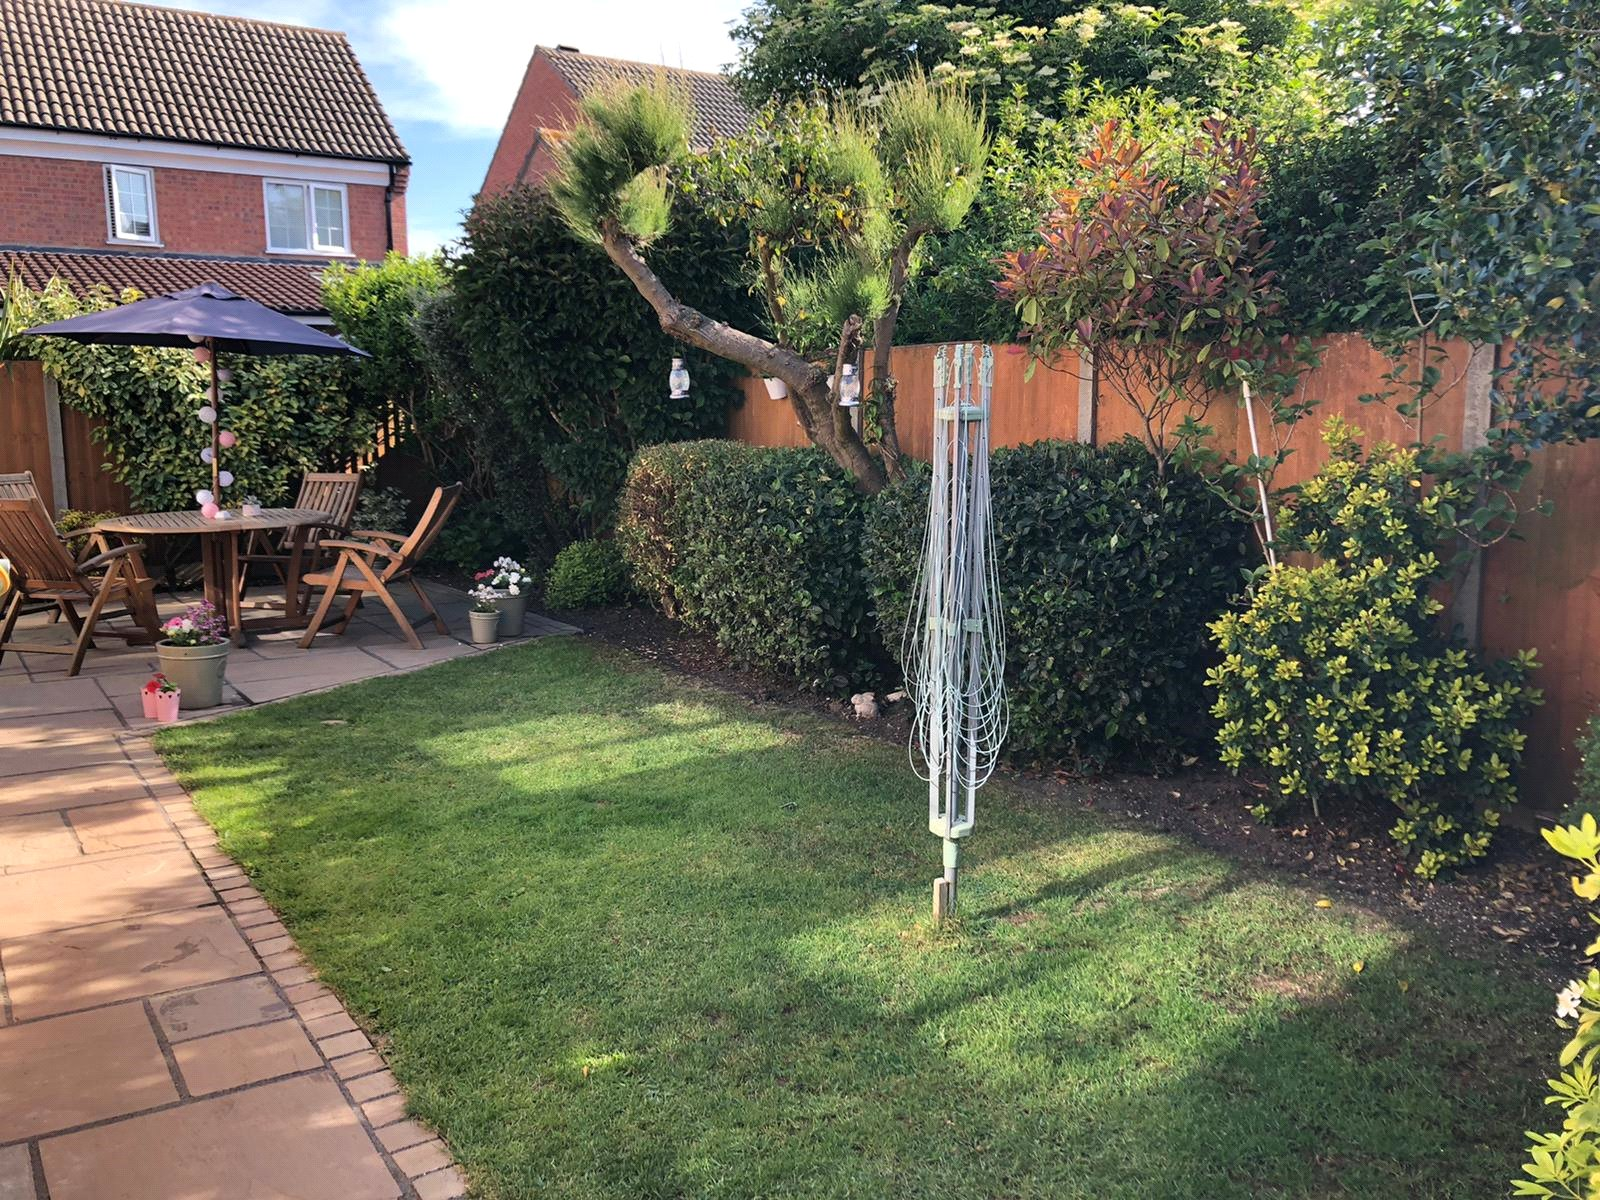 3 bed house for sale in Axis Way, Eaton Socon 11